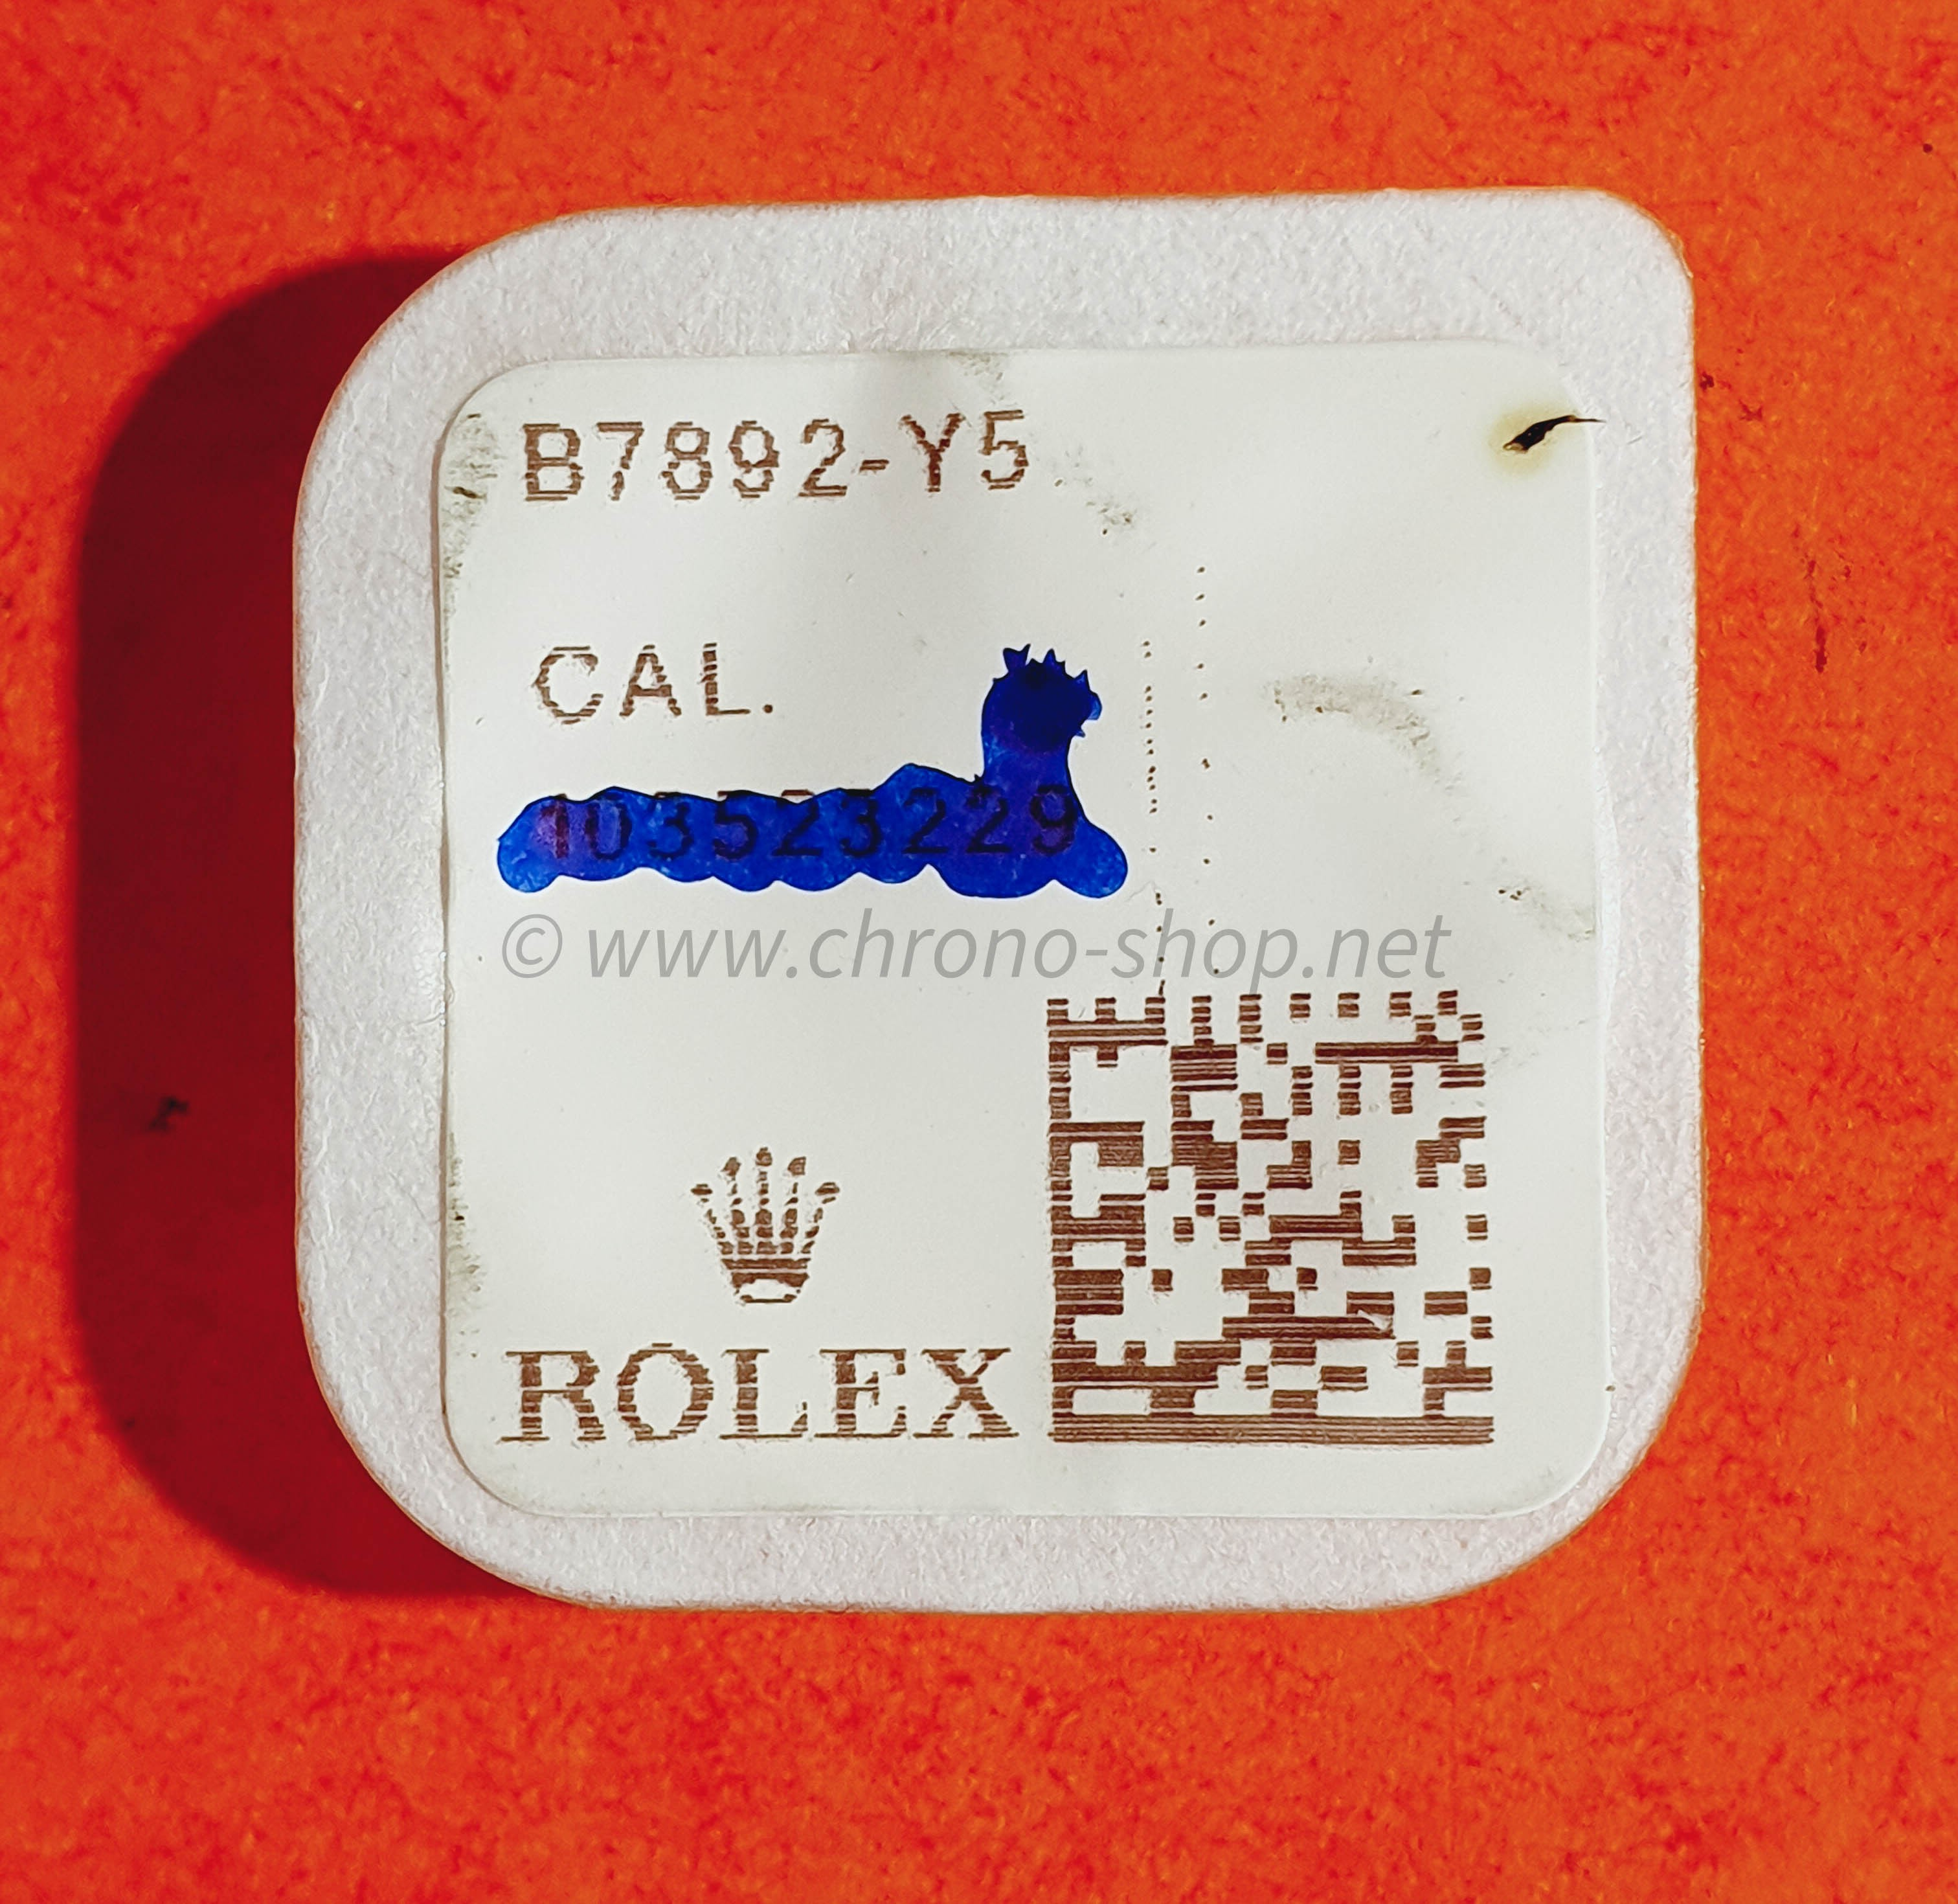 Rolex Genuine factory 1556,1525,1530,1520 Ref 7892,B7892-Y5 Screws for dial New Package ref 7892,B7892-Y5